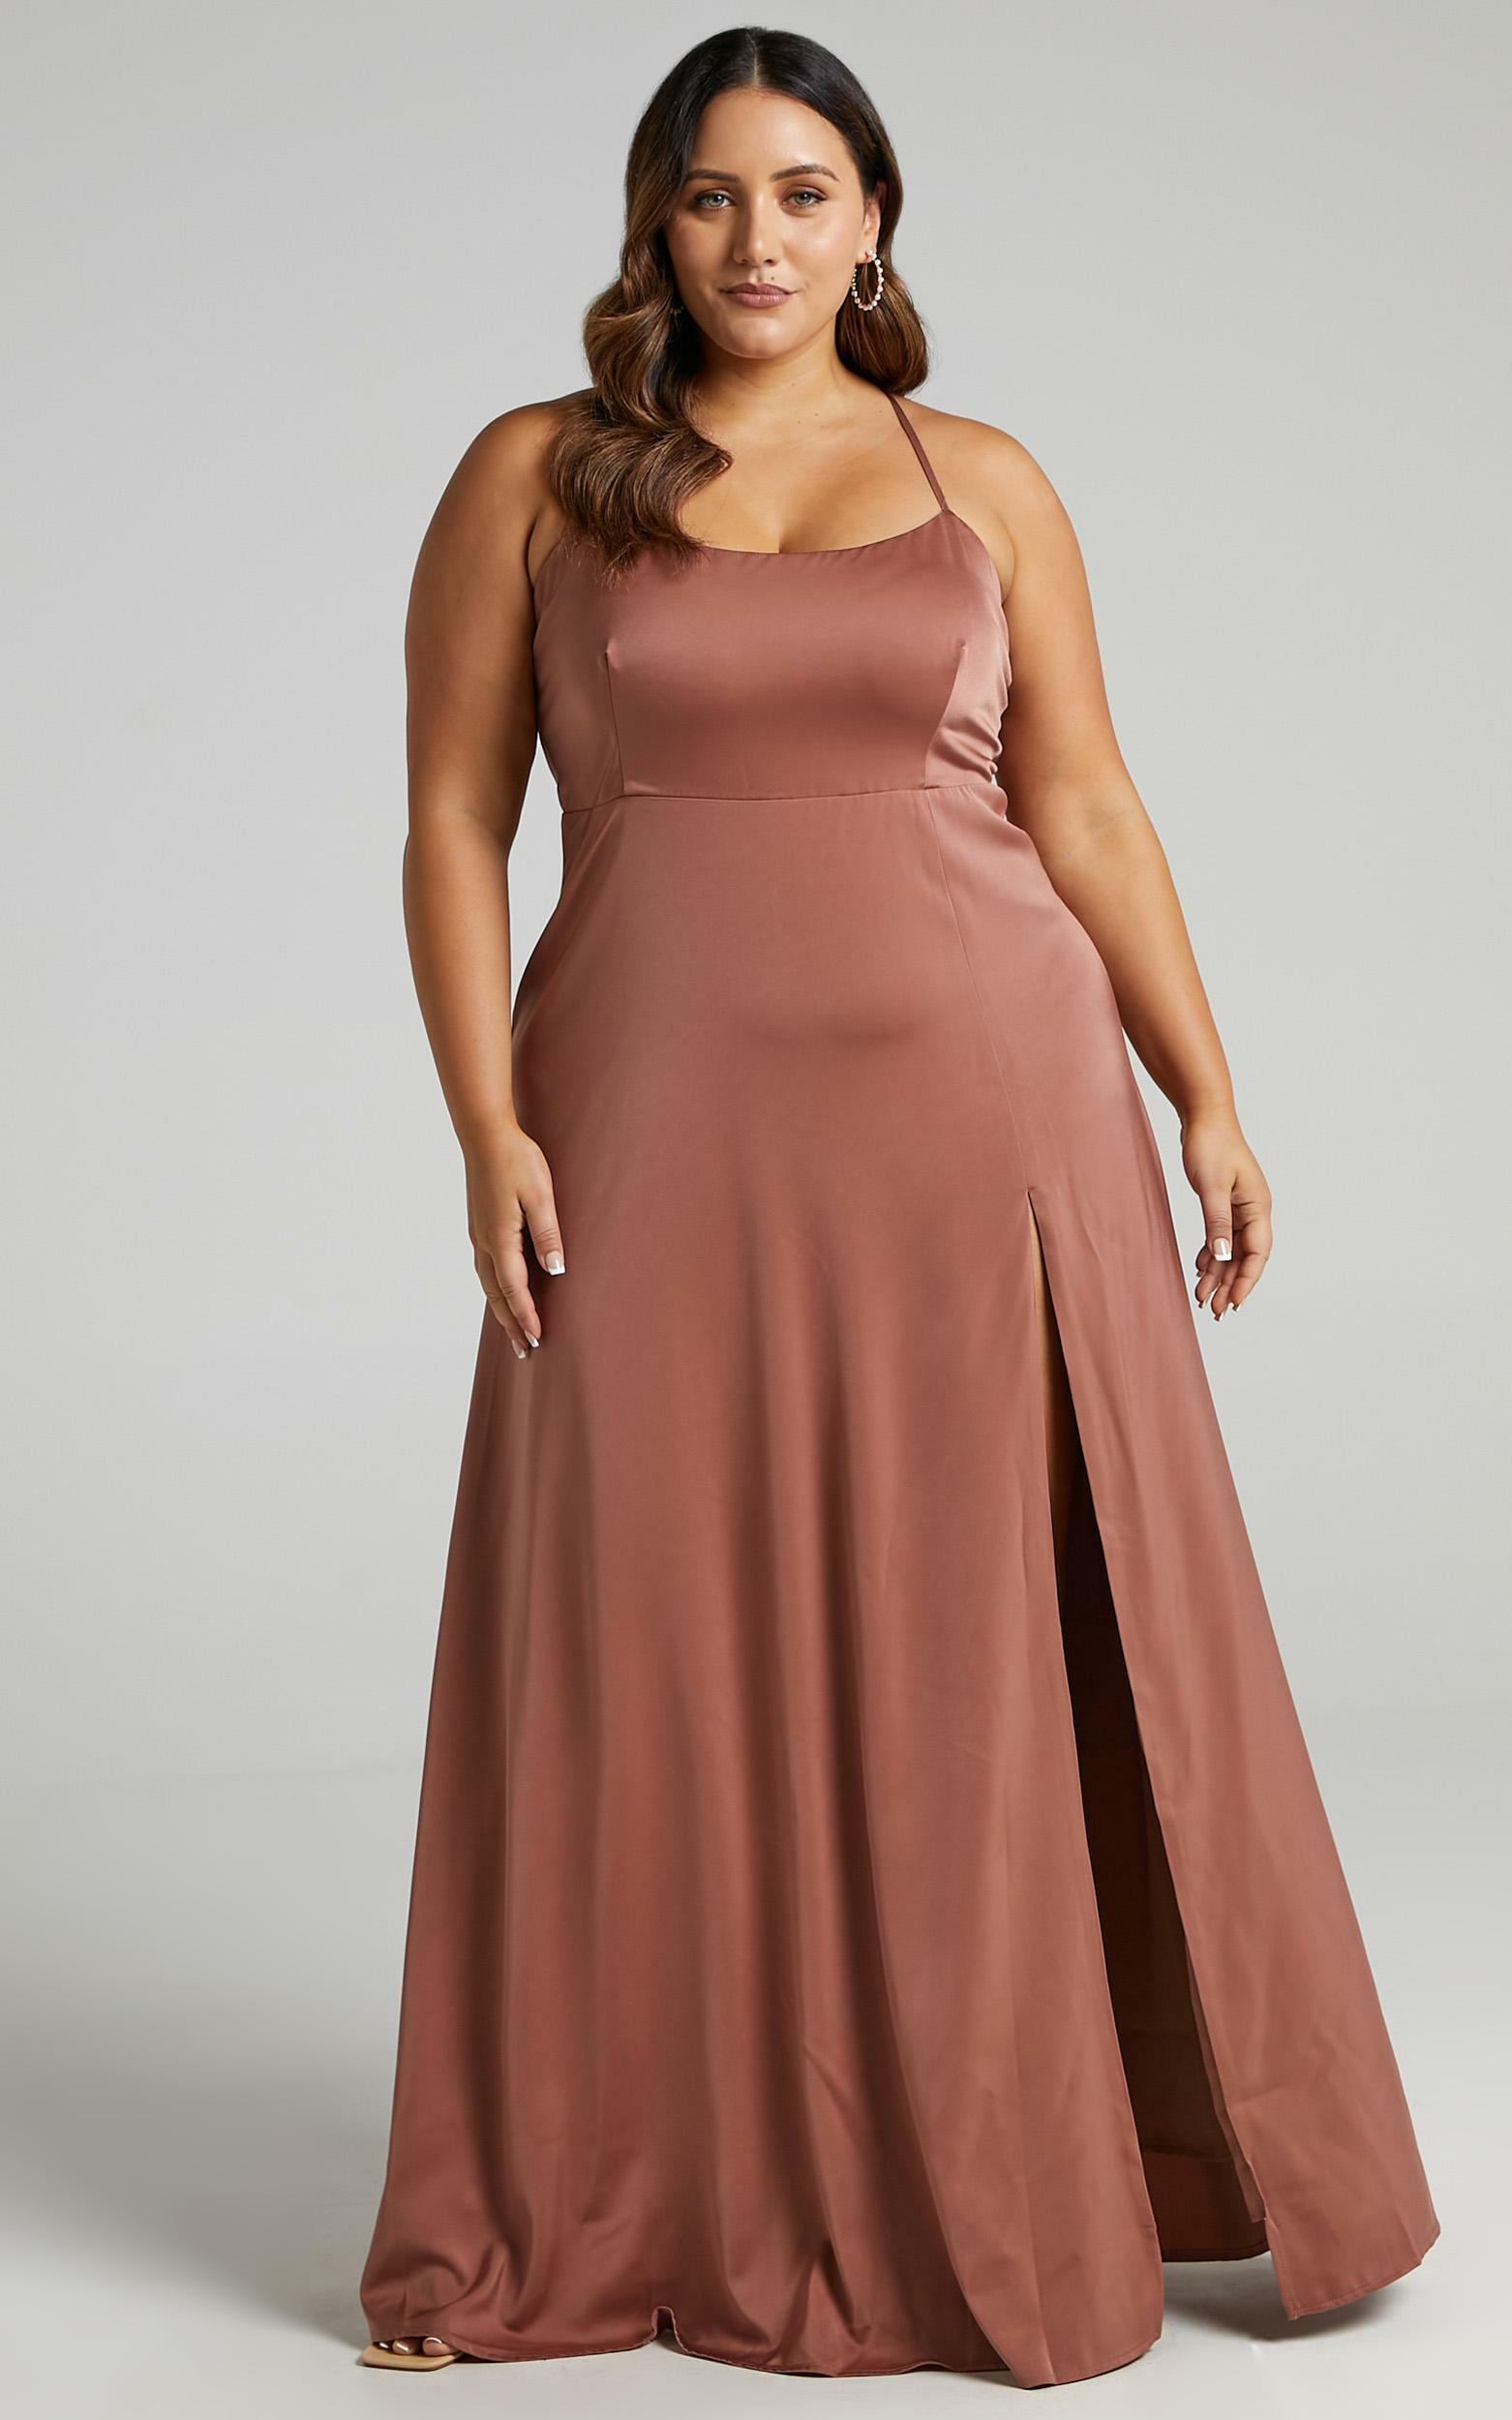 Will it be us dress in dusty rose - 20 (XXXXL), PNK12, hi-res image number null